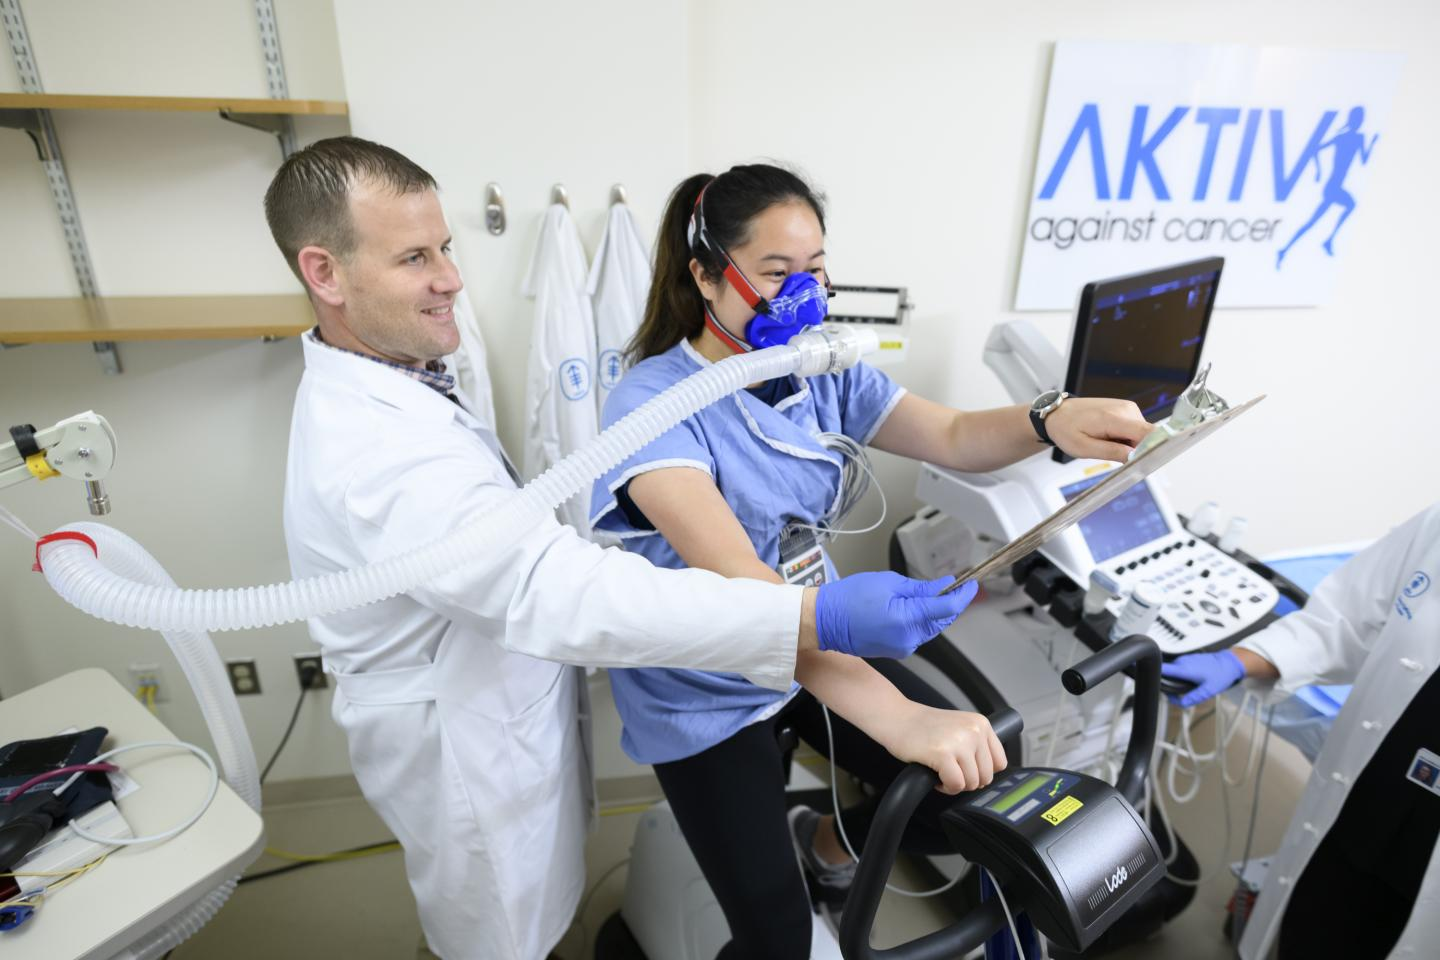 Physiologist Conducts Cardiopulmonary Exercise Test on Patient